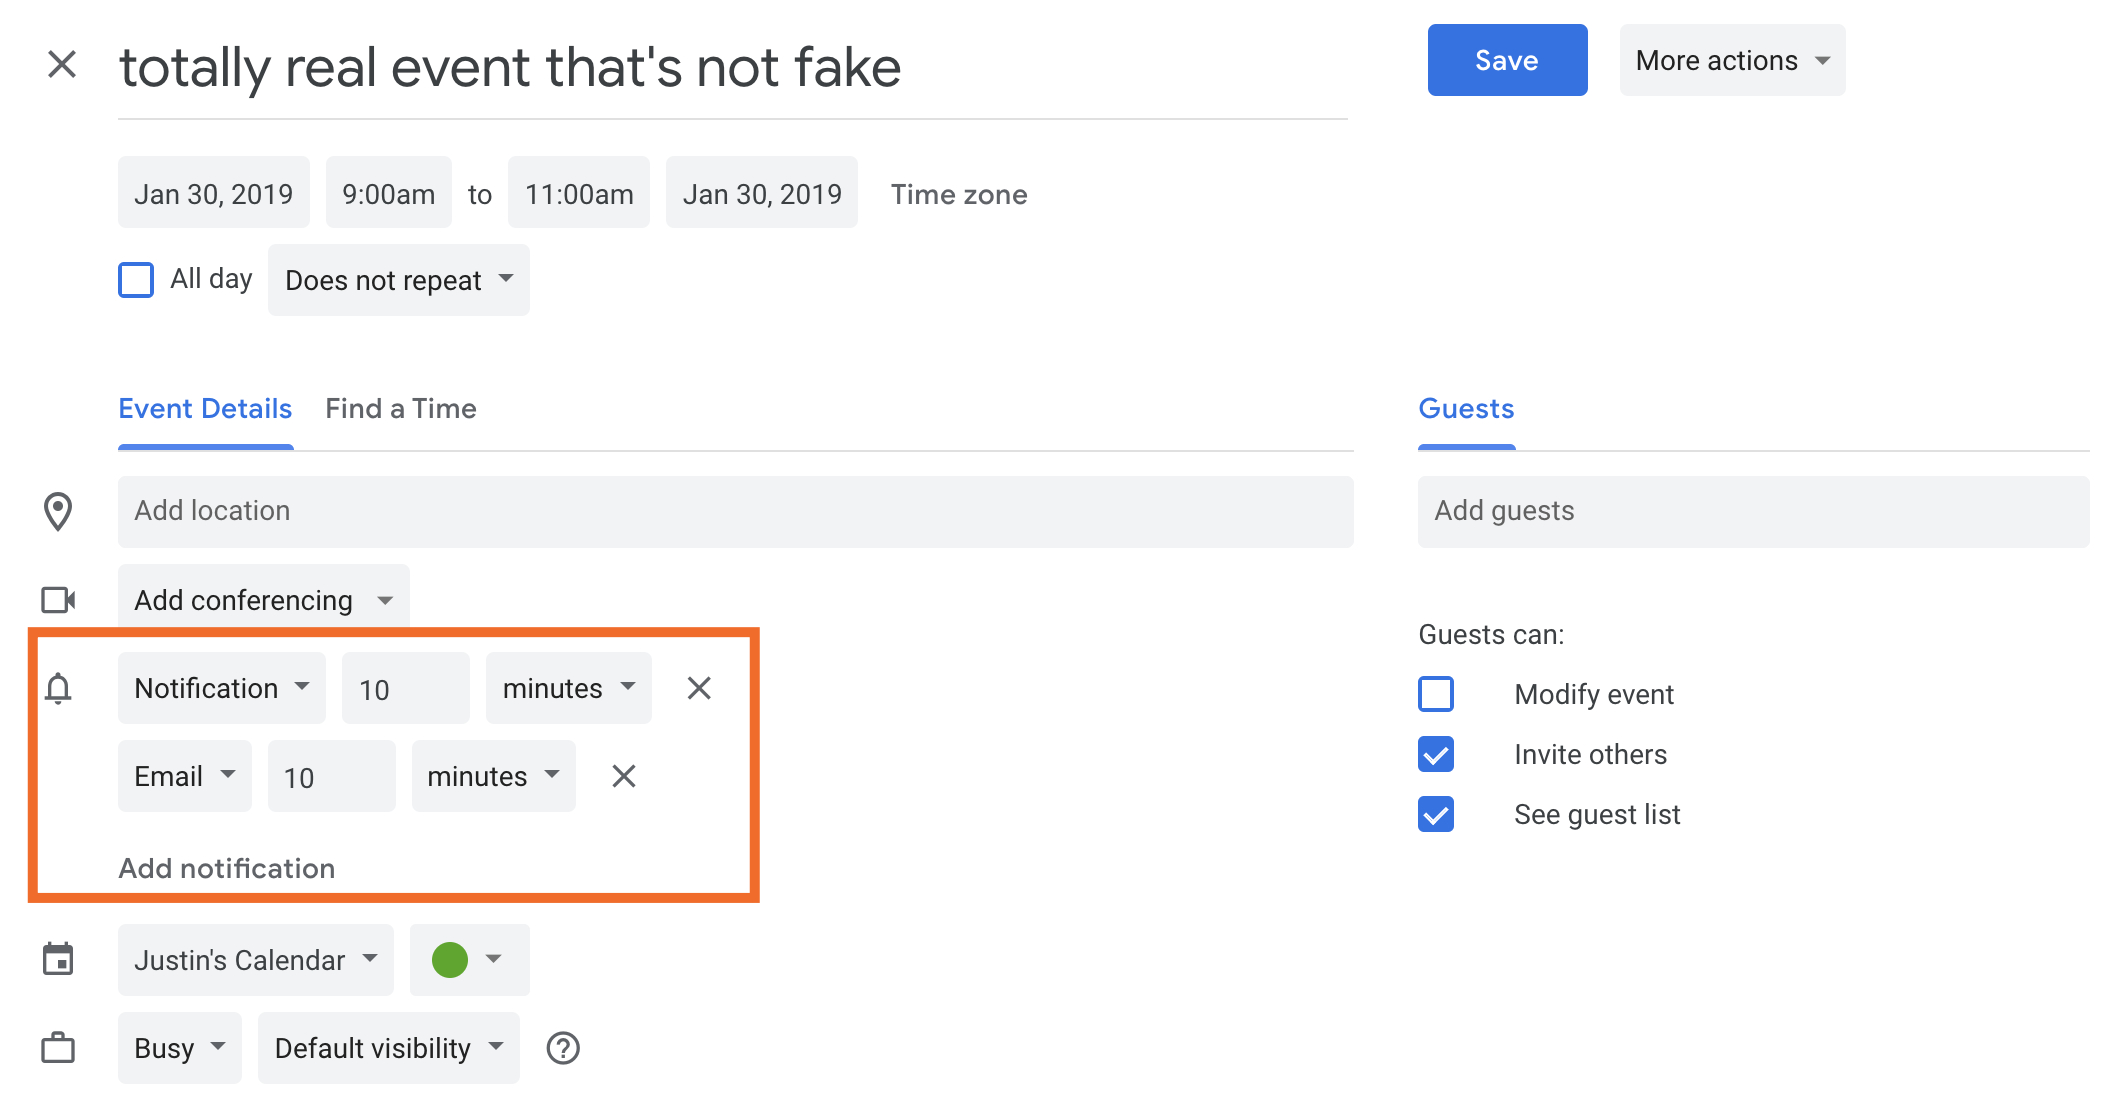 How To Change Your Notifications For Google Calendar regarding Google Calendar Desktop Notifications Vs Alerts